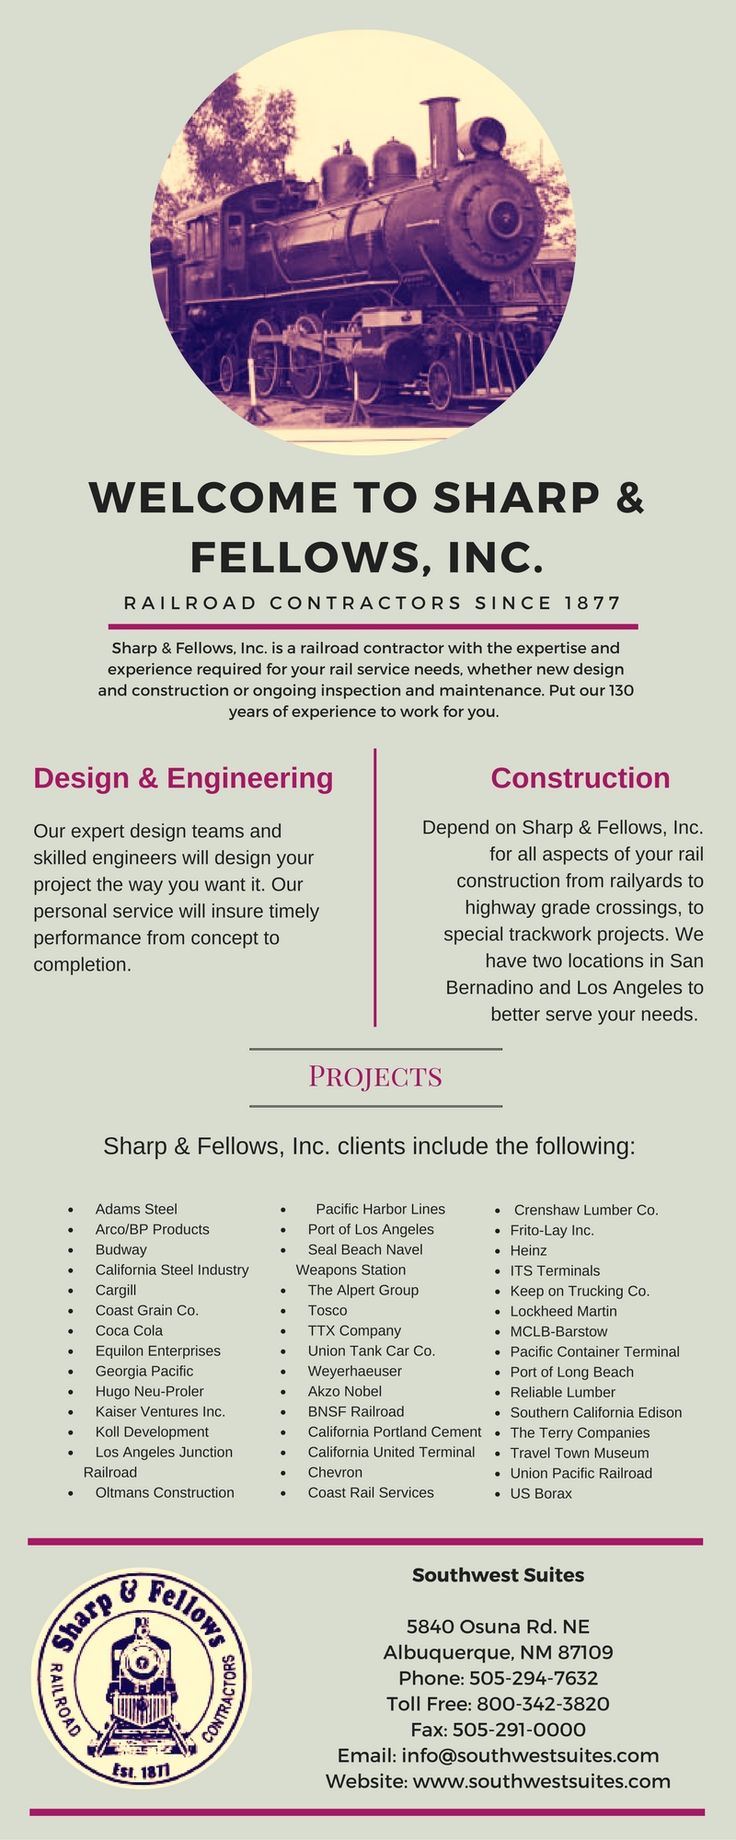 Sharp & Fellows, Inc. is a railroad contractor with the expertise and experience required for your rail service needs, whether new design and construction or ongoing inspection and maintenance.We provide Quality Services for Industry Track Owners and Railroads.To know more about our services like Santa Fe Springs Railroad Inspection visit us!